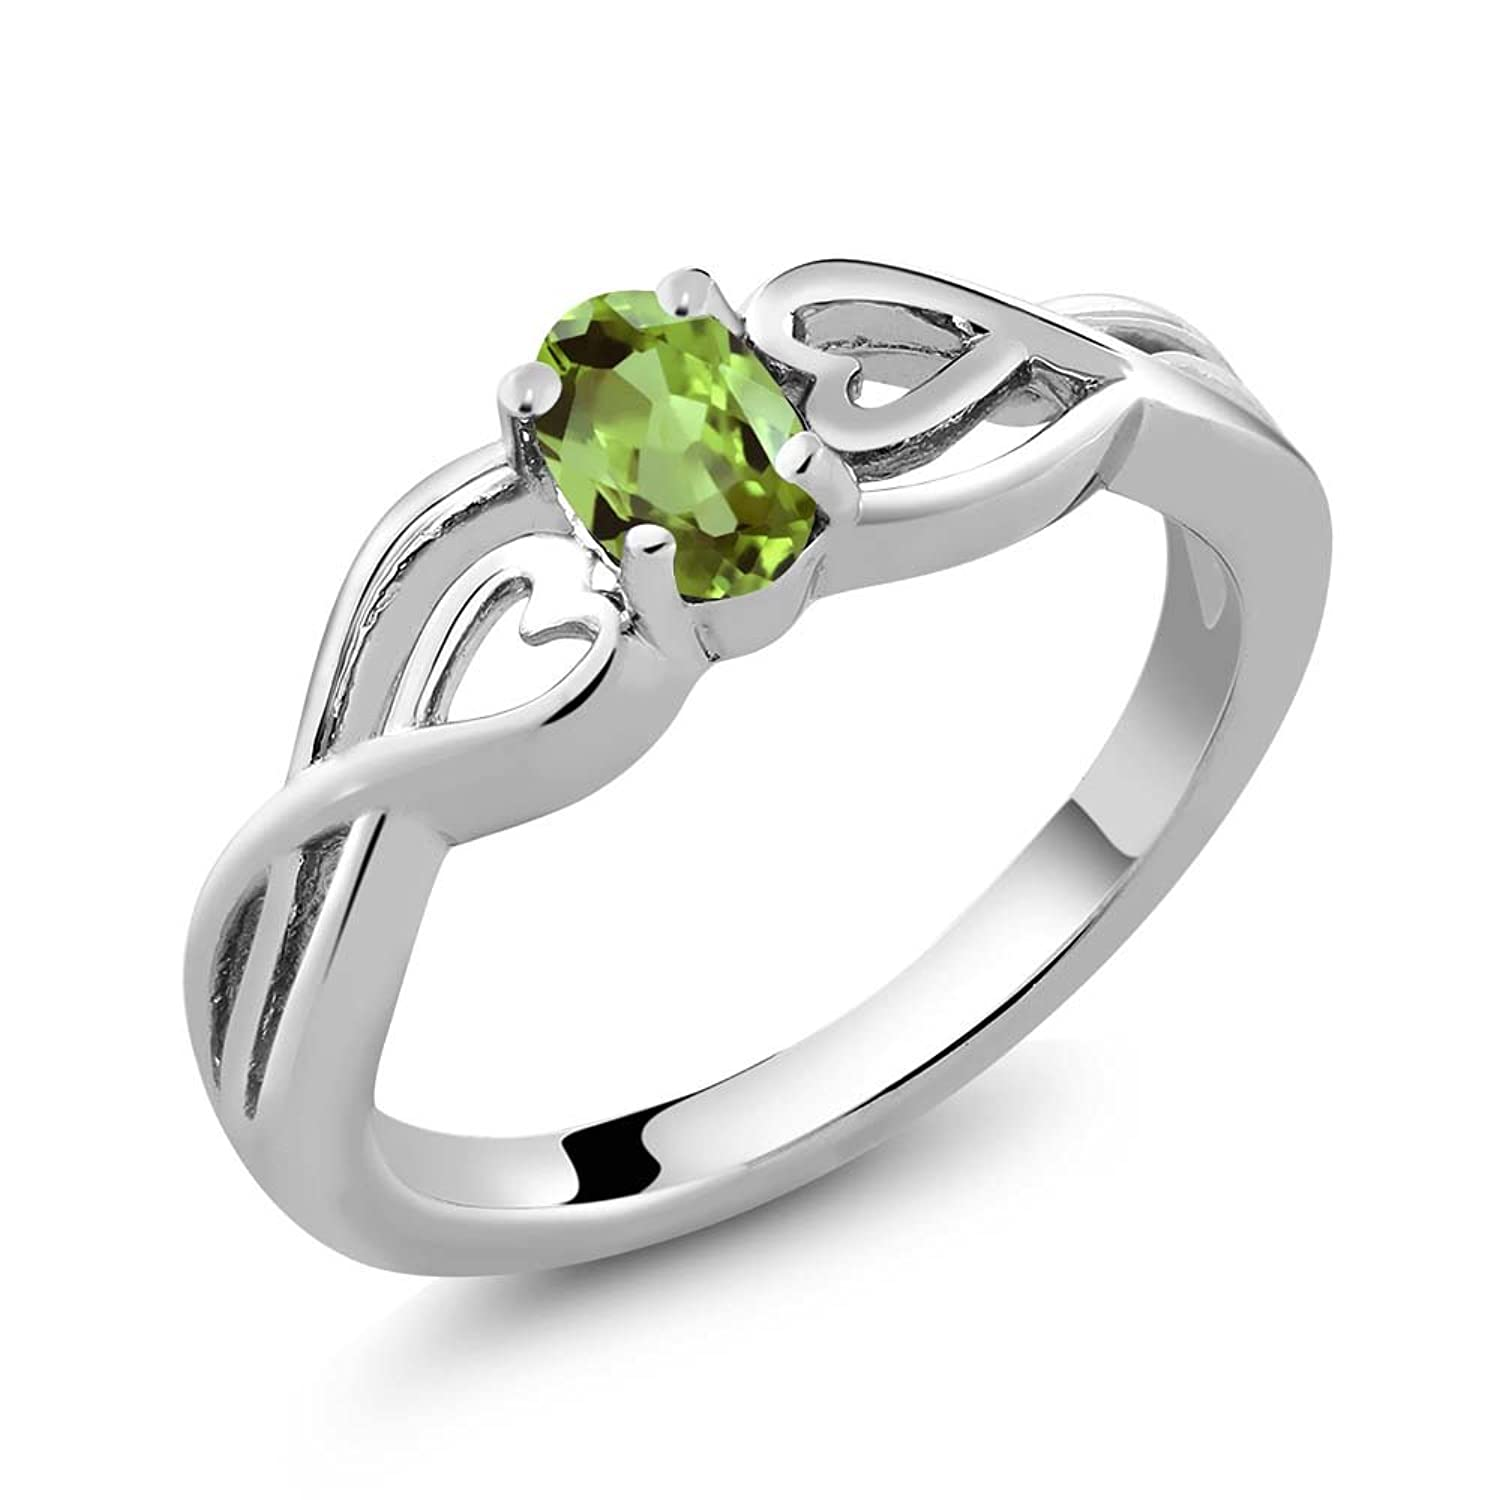 0.50 Ct 6X4MM Oval Shape Green Peridot 925 Sterling Silver Women's Ring (Available in size 5, 6, 7, 8, 9)